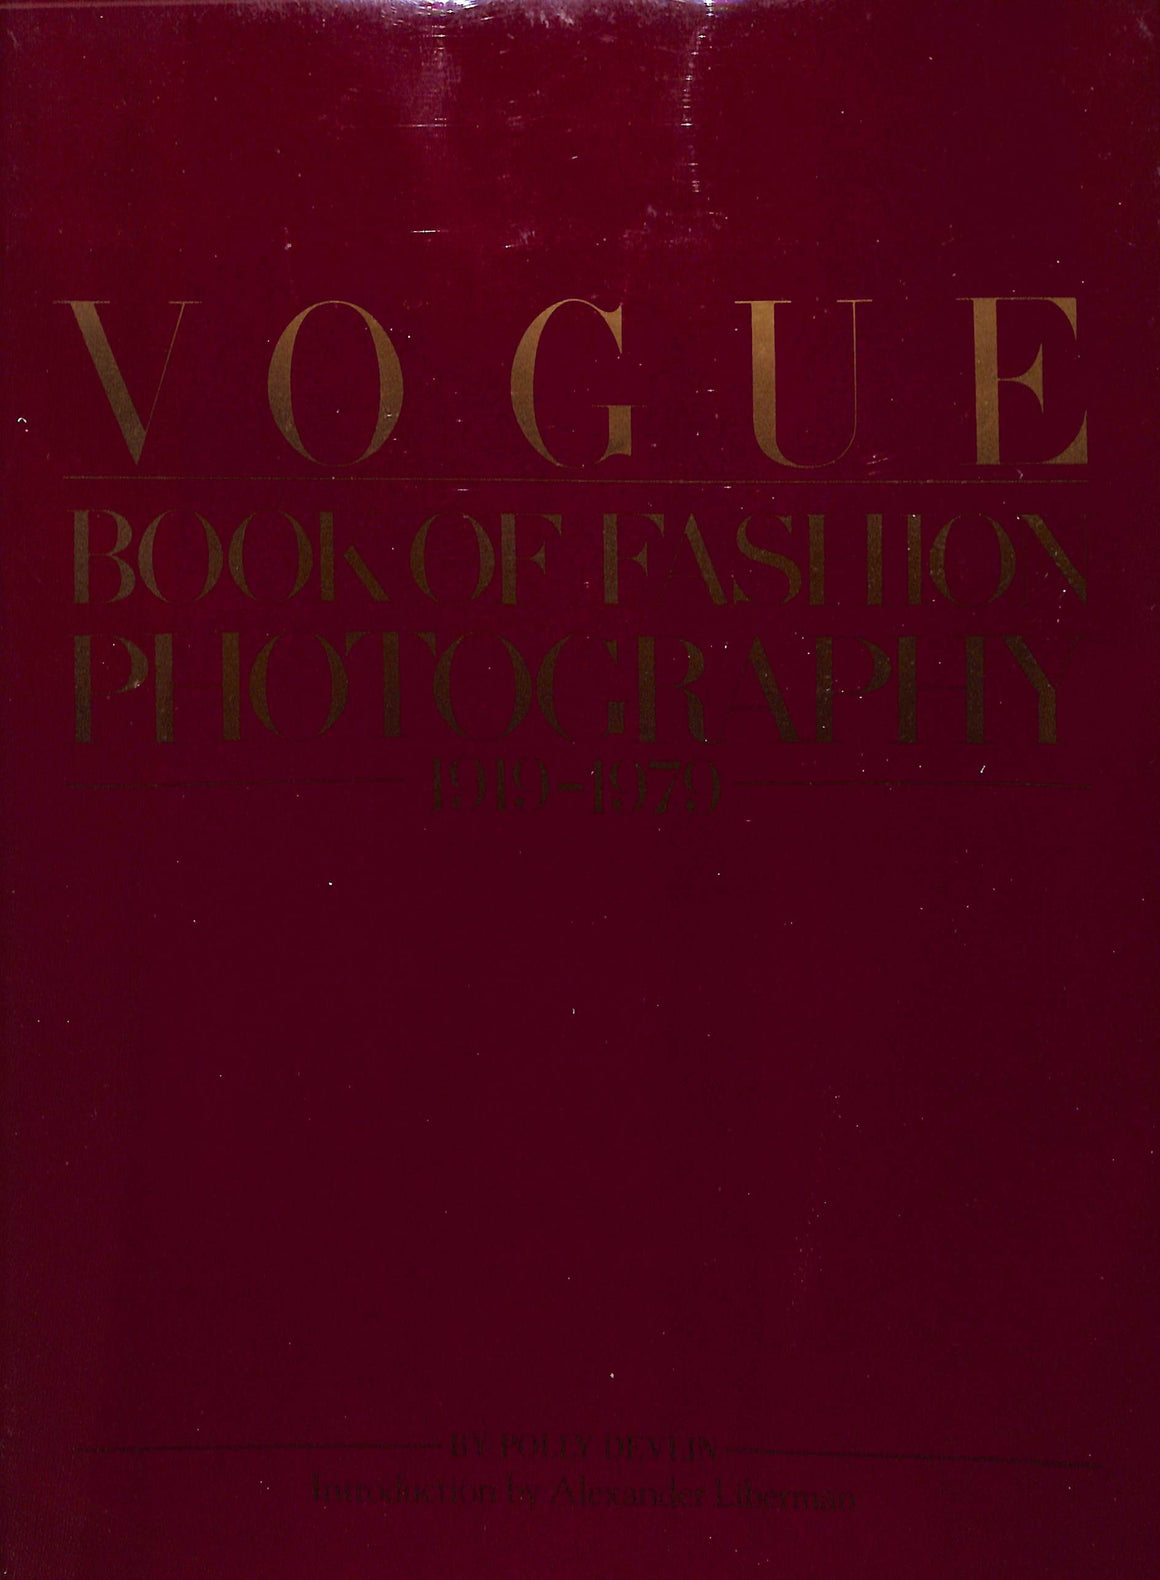 Vogue Book of Fashion Photography by Polly Devlin